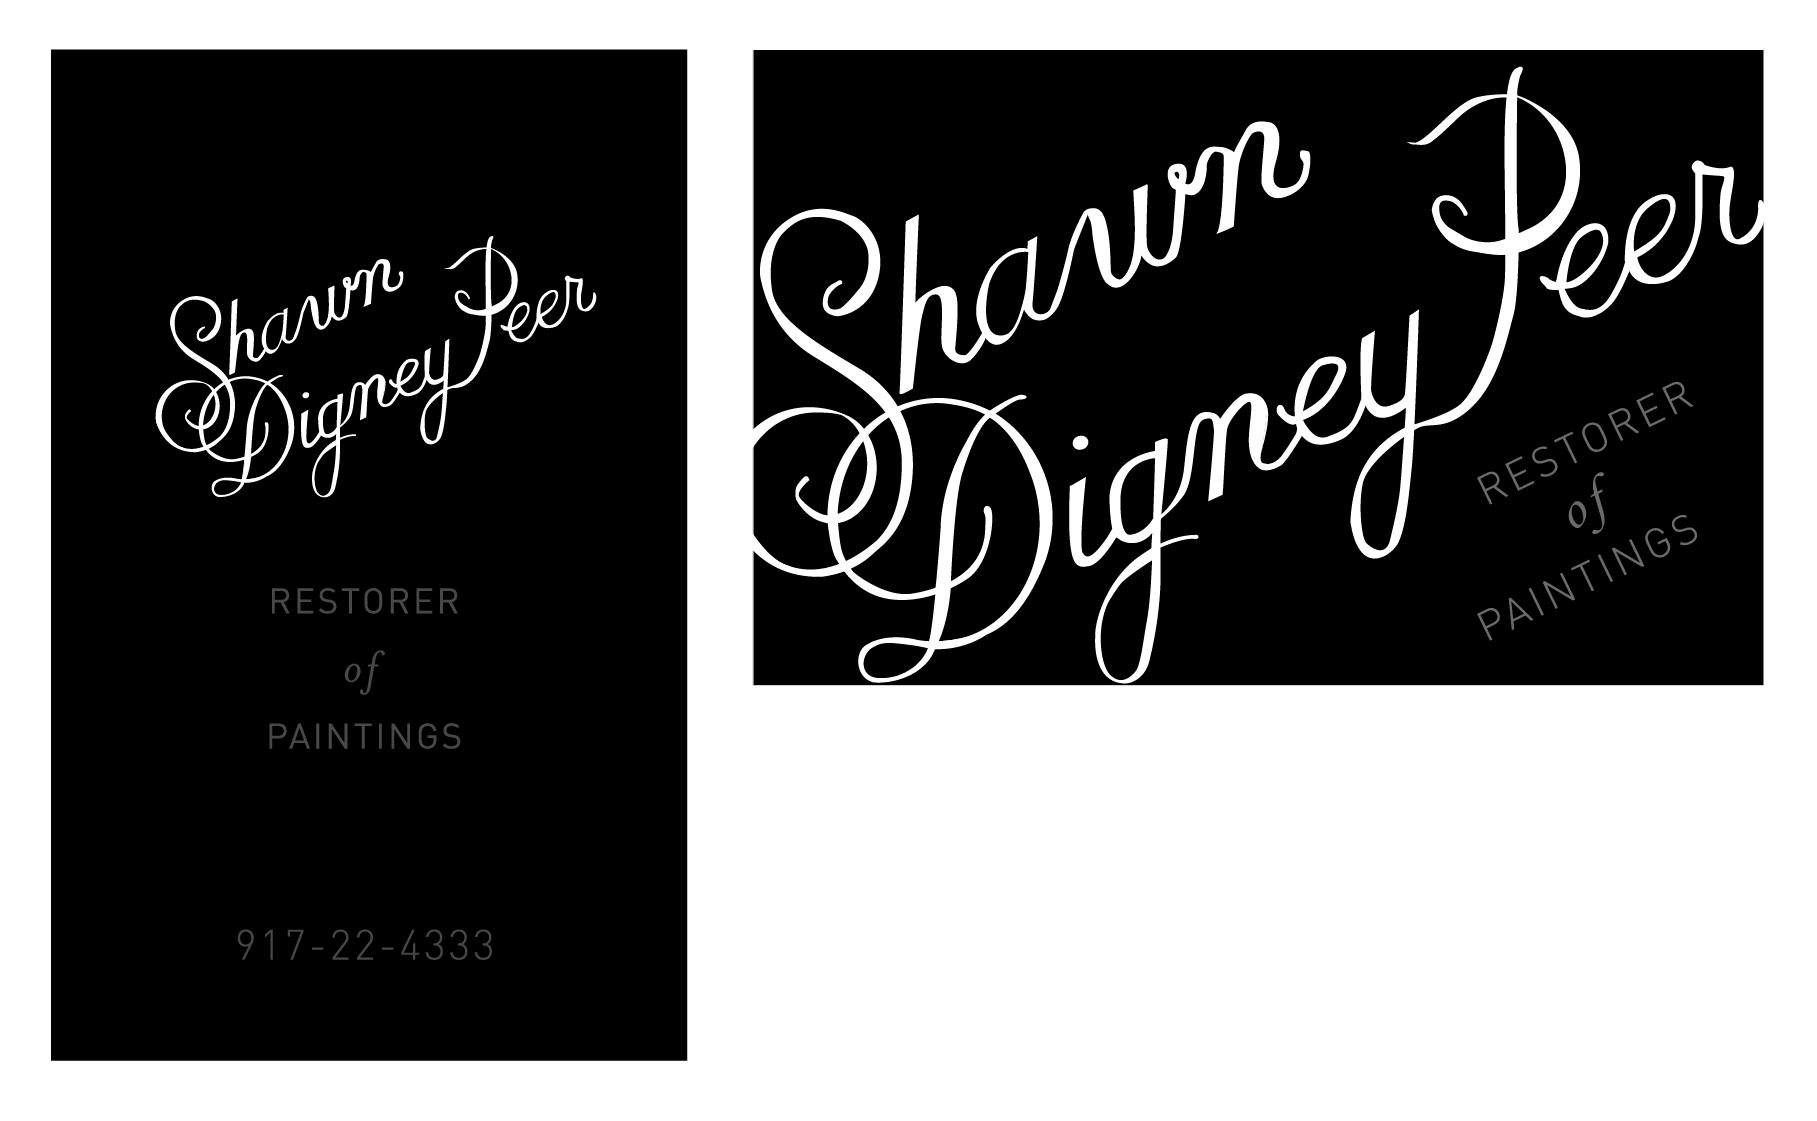 Business Card for a Paintings Restorer - image 1 - student project